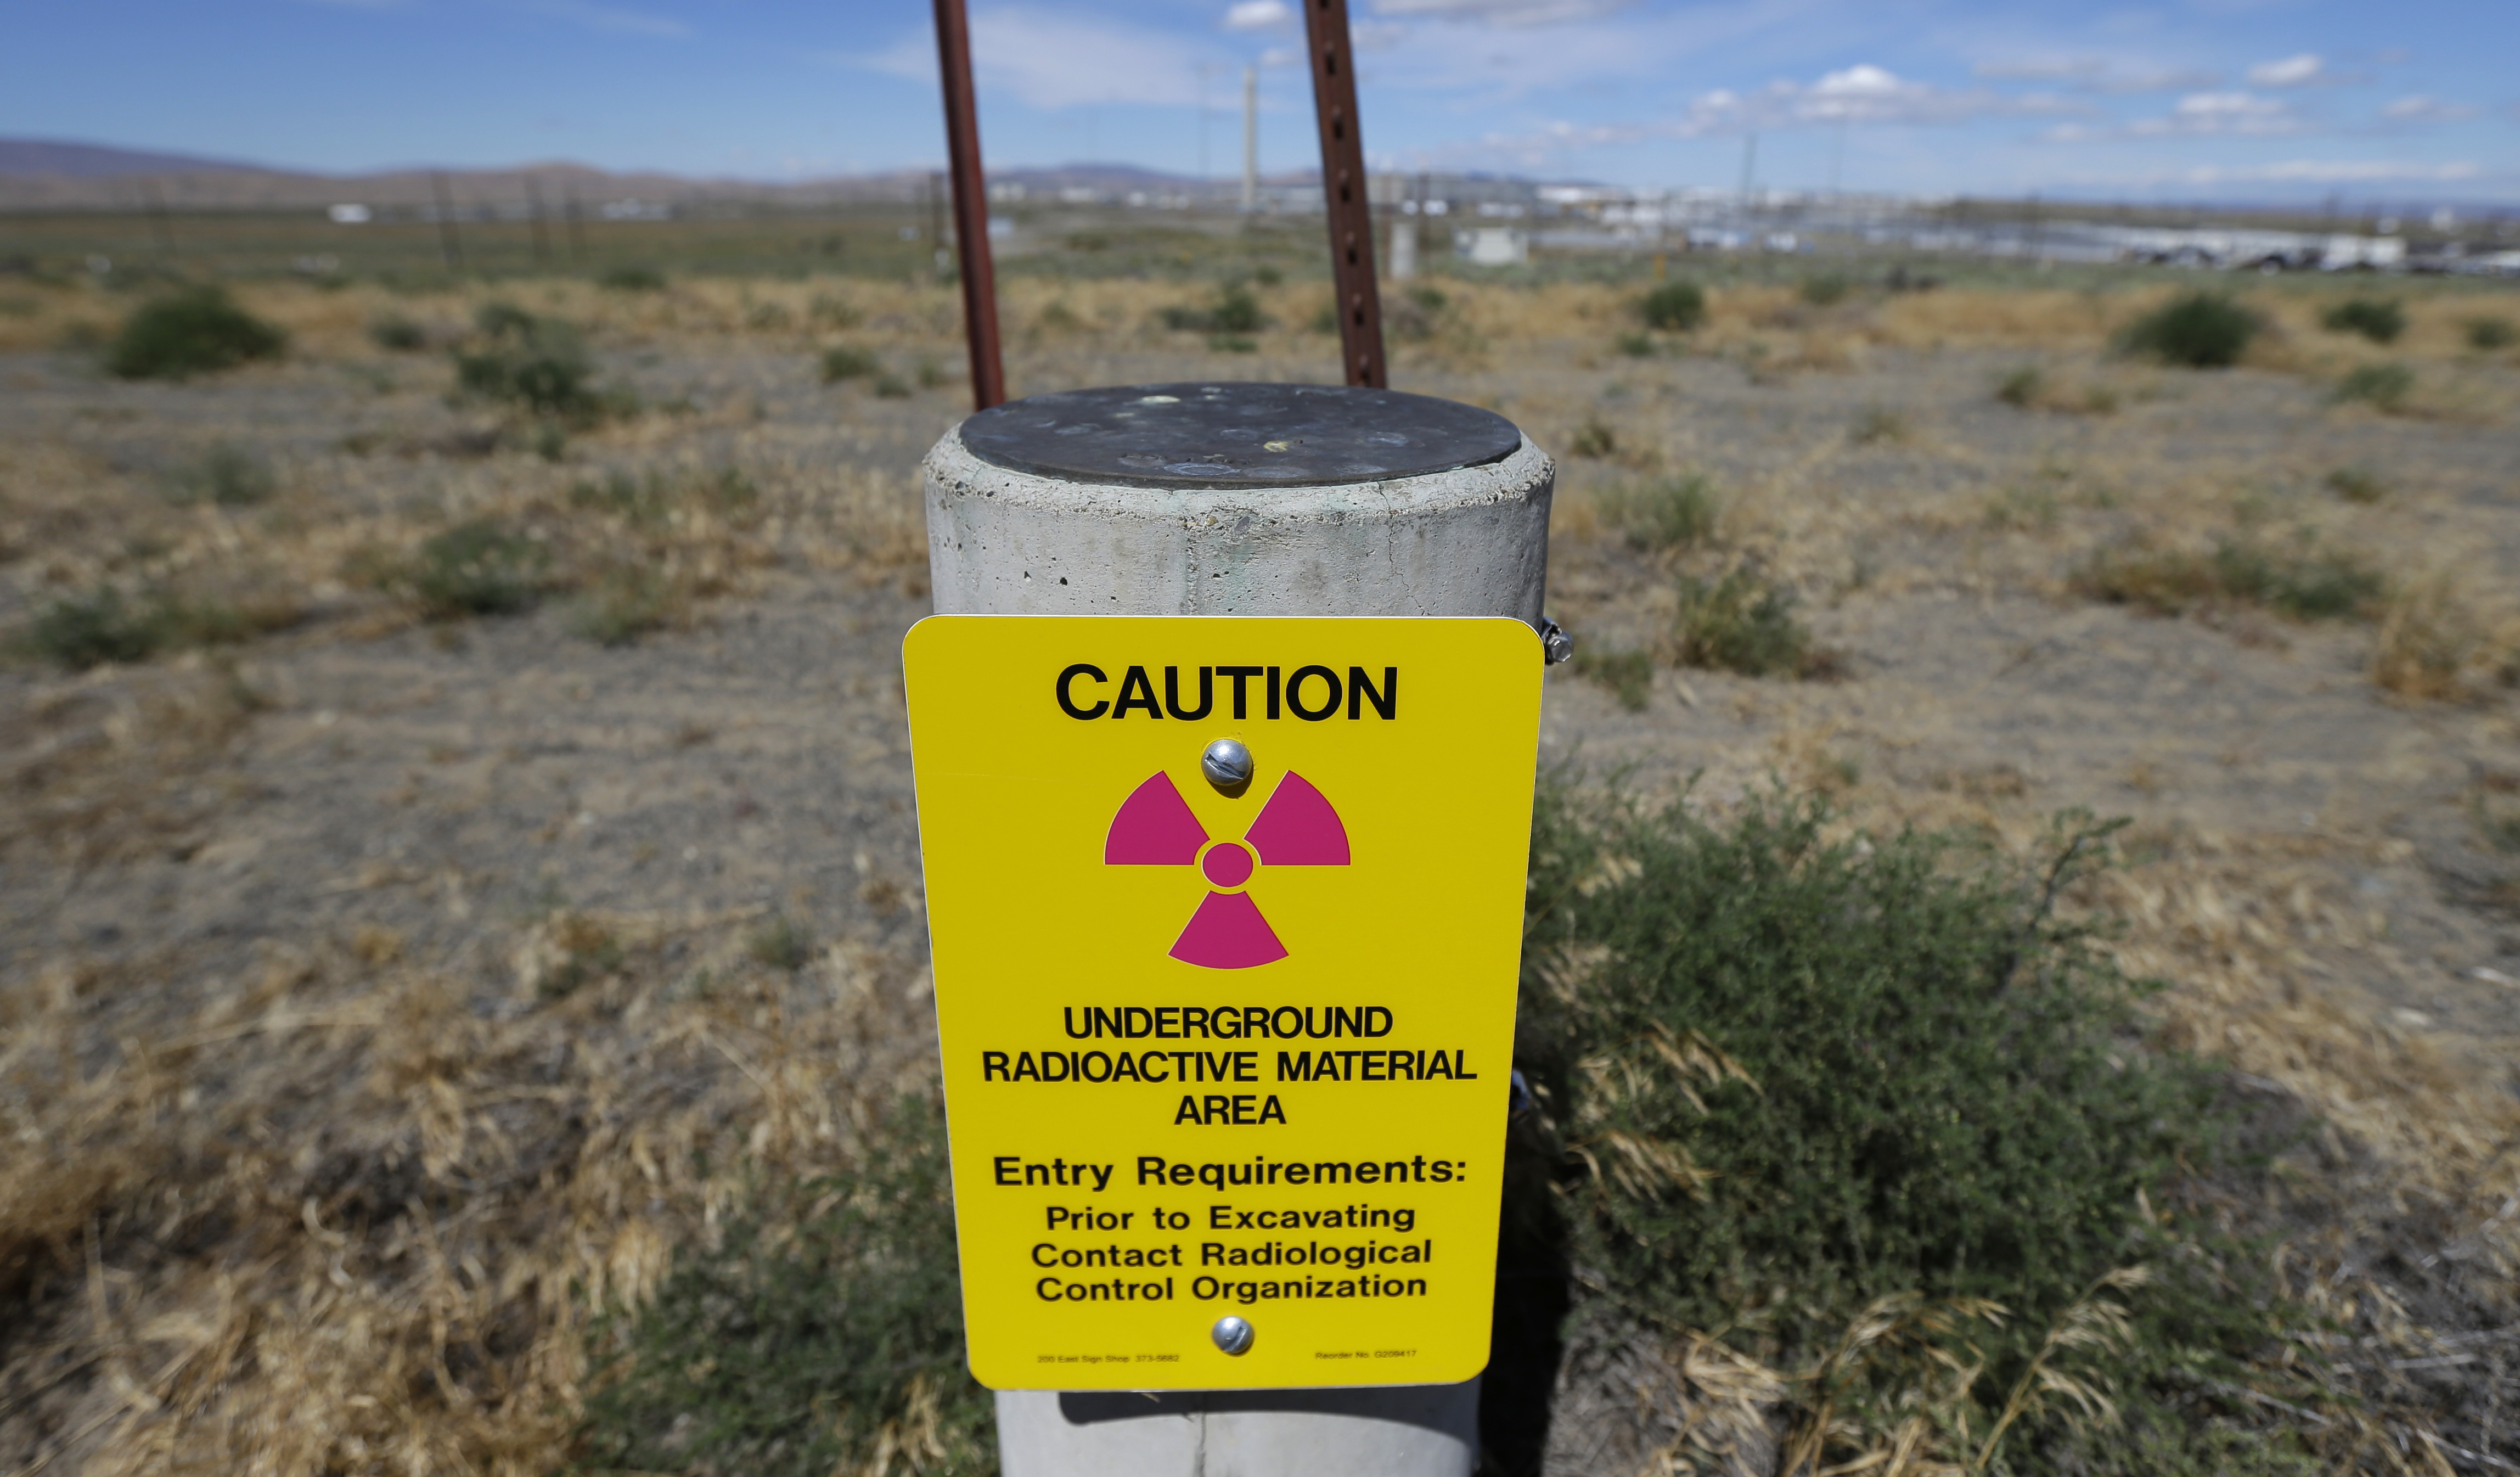 FILE - In this photo taken July 11, 2016, a sign warns of radioactive material stored underground on the Hanford Nuclear Reservation near Richland, Wash.